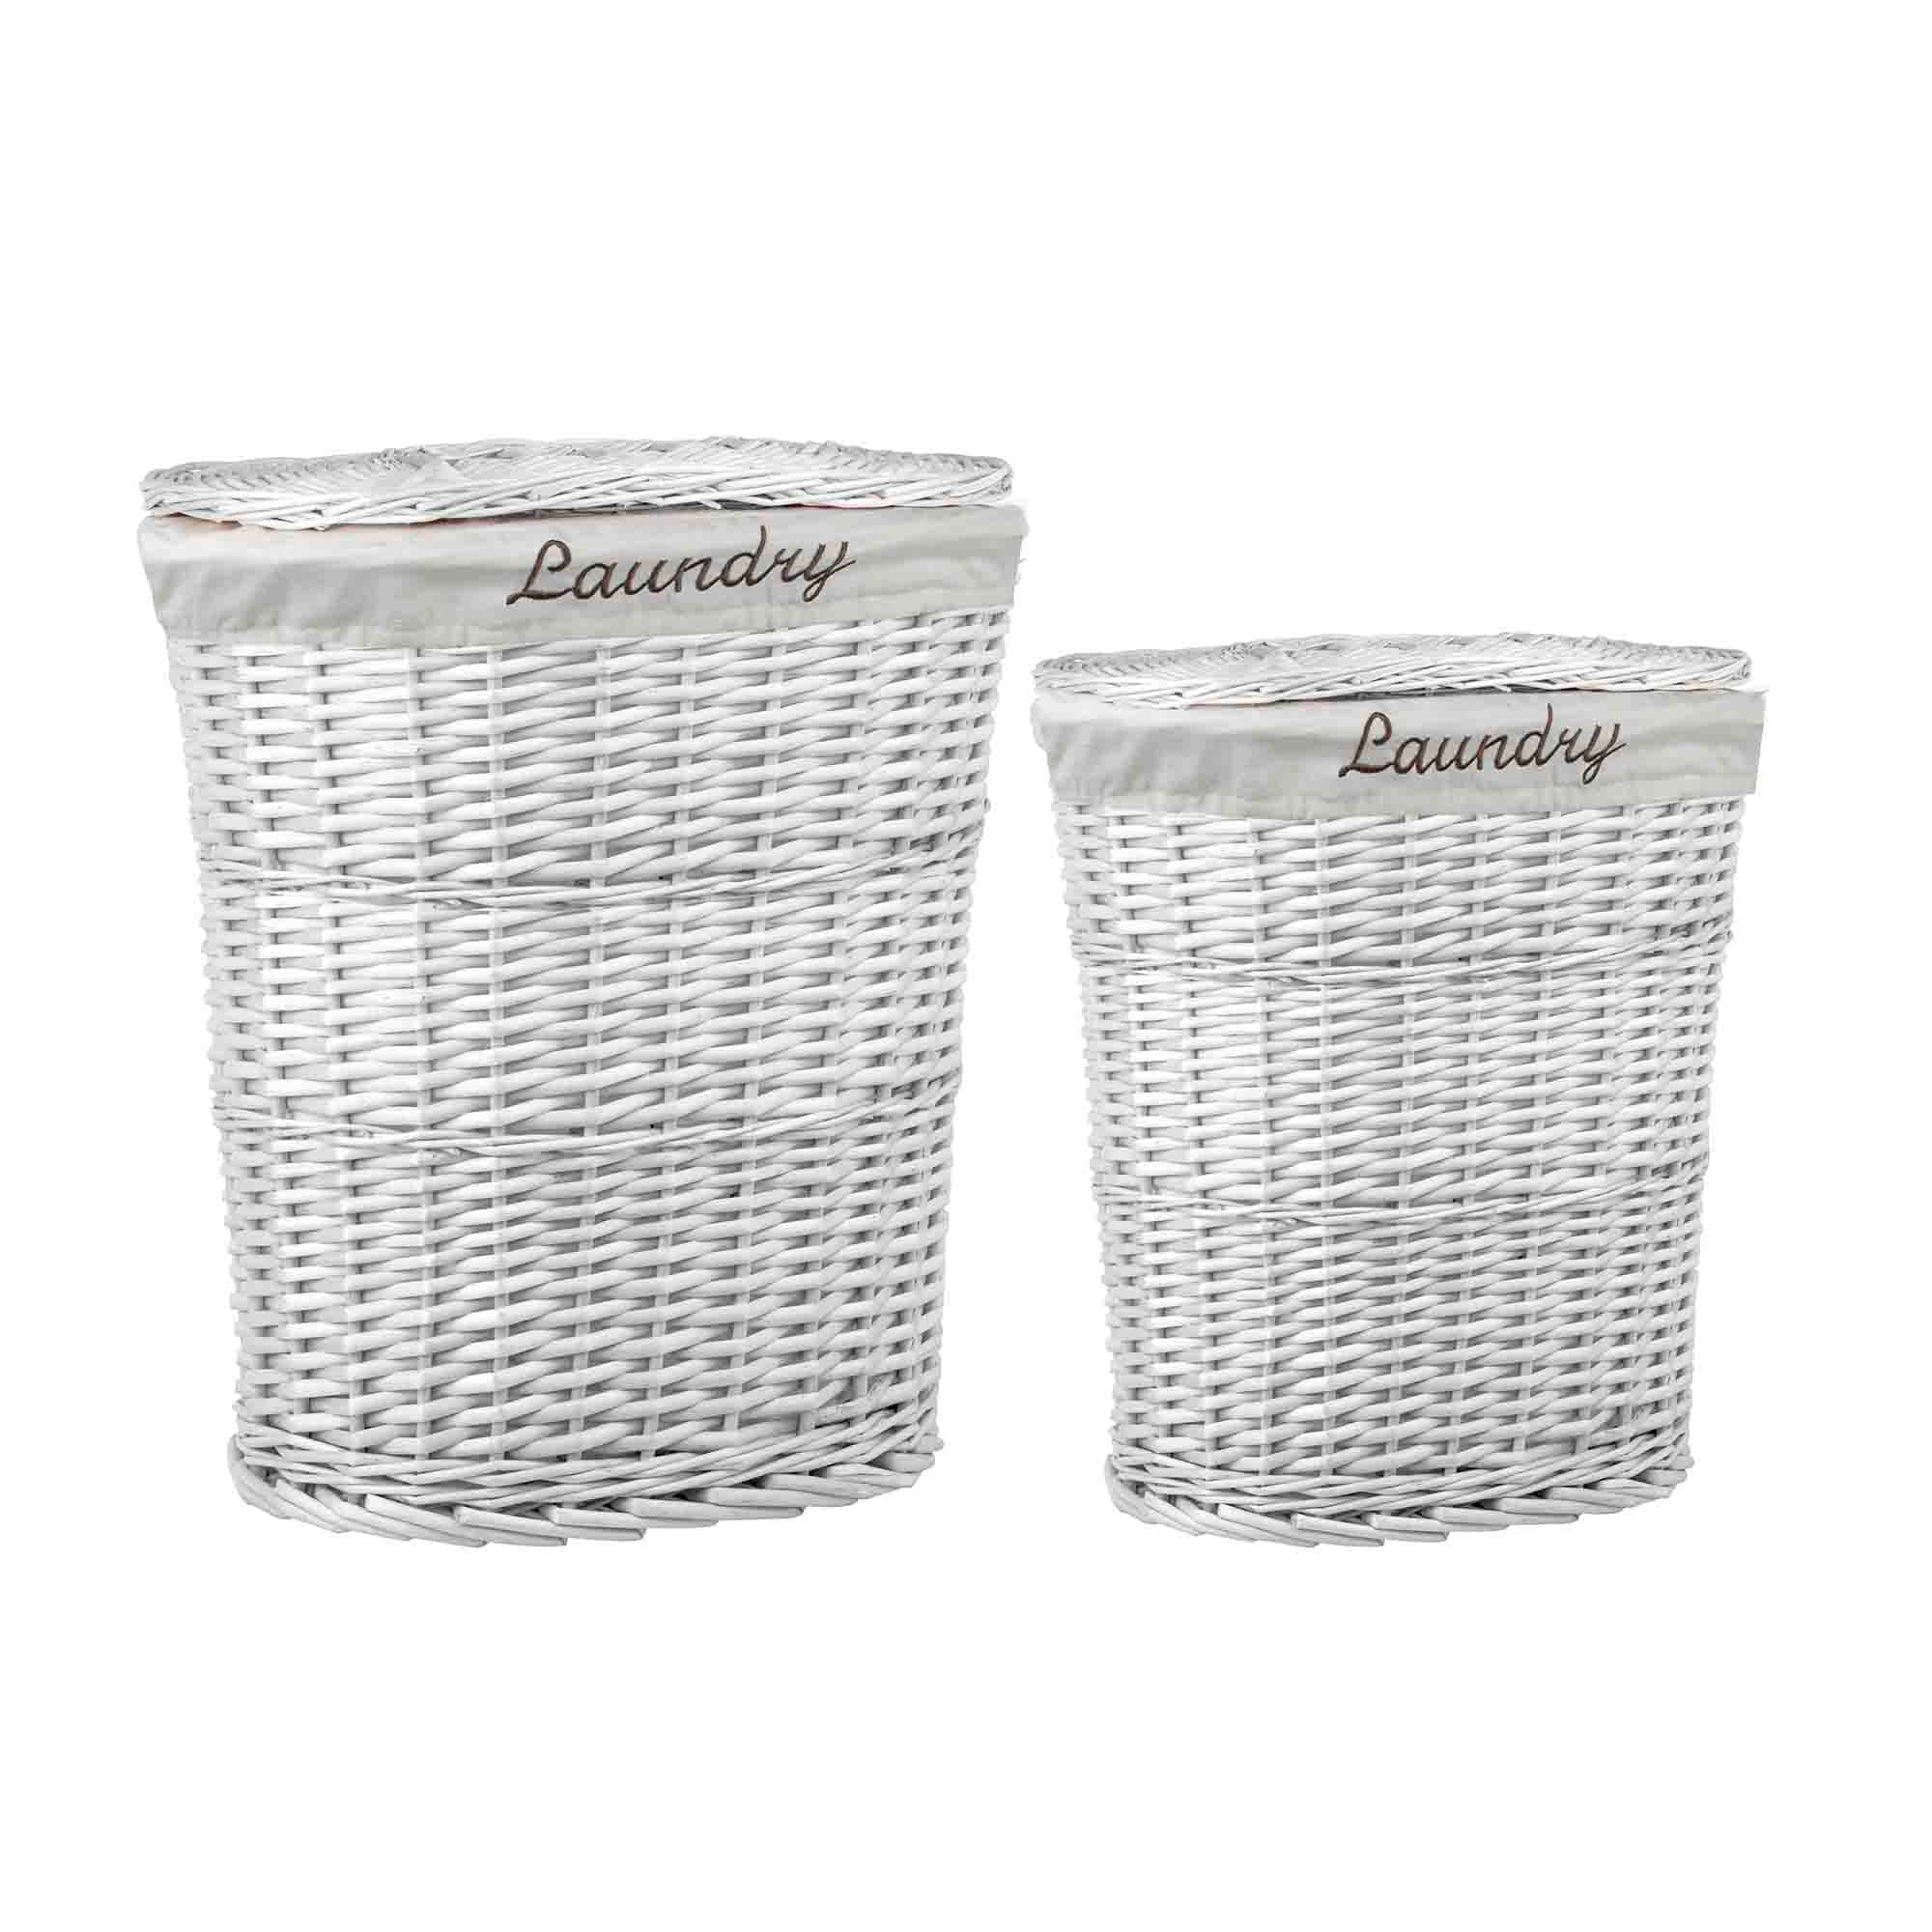 2 Piece  Wicker Hamper with Liner, White